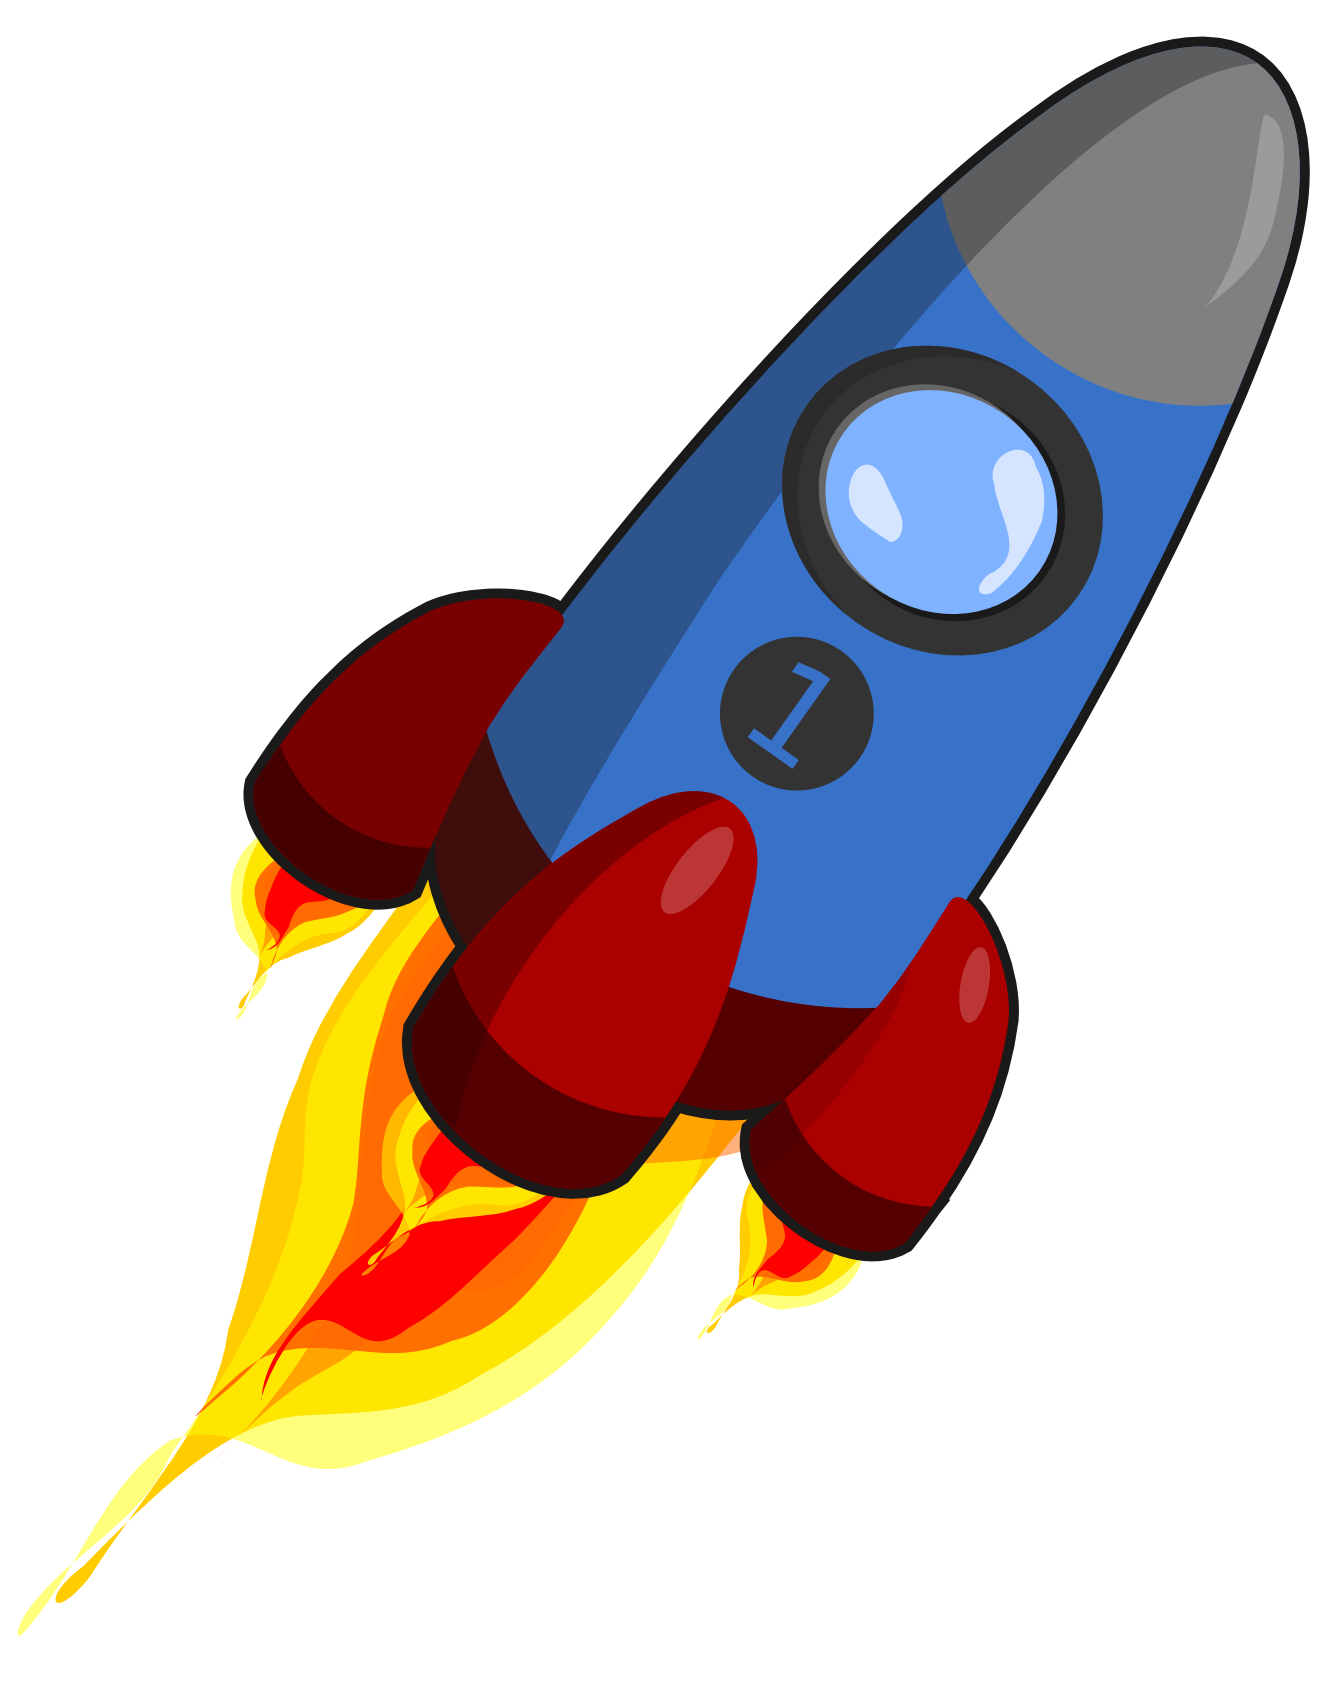 Moving clipart rocket #14